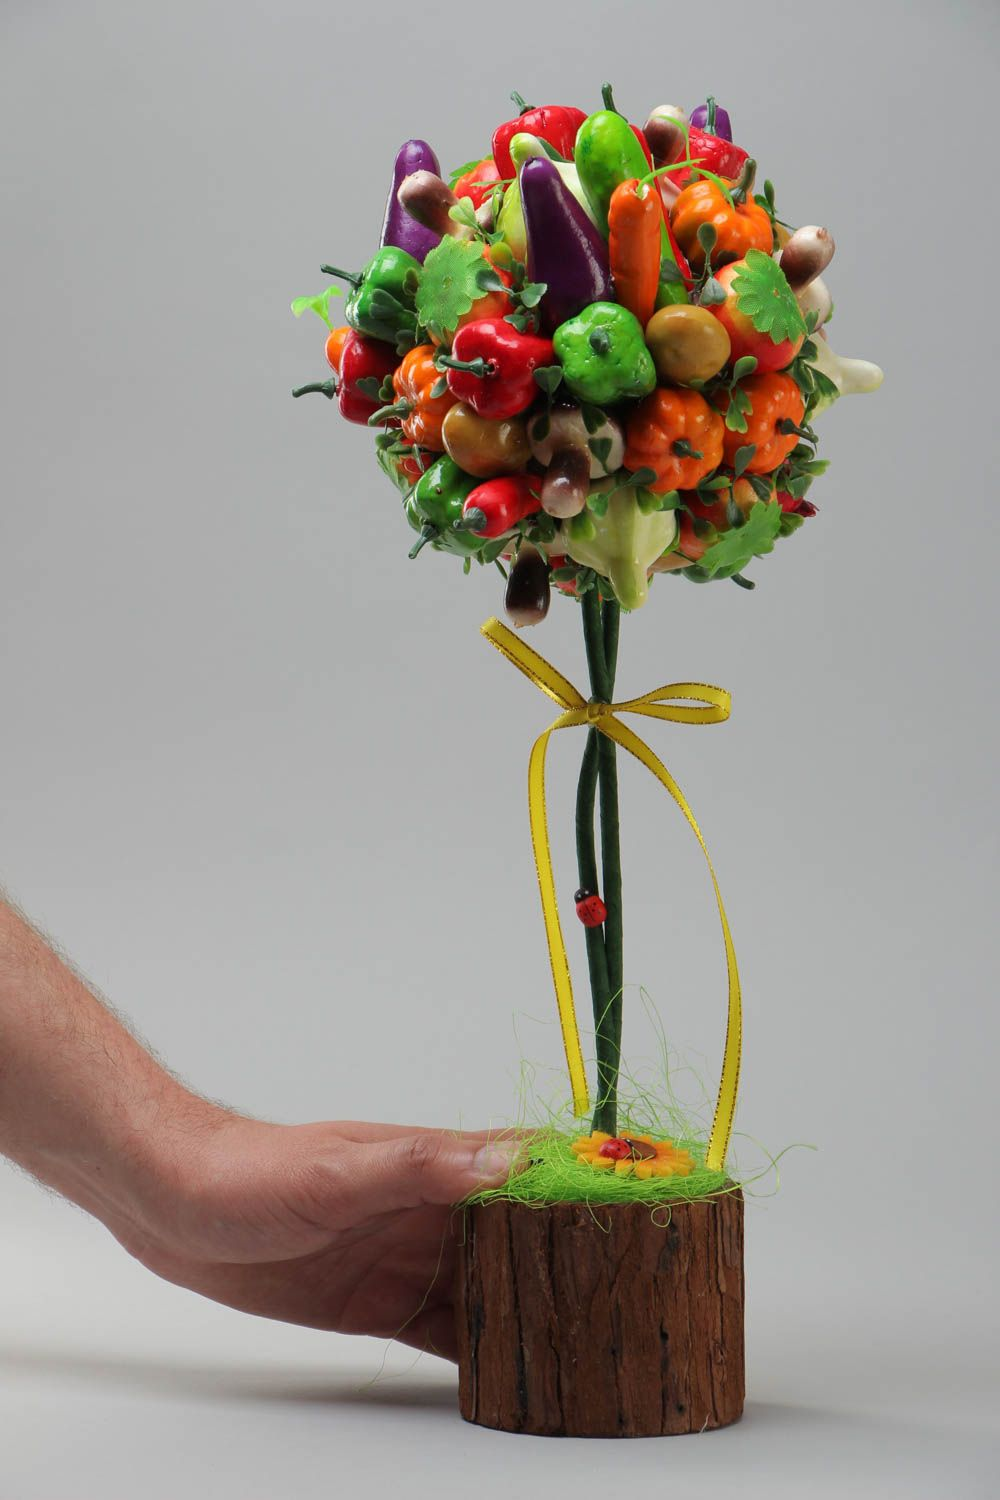 Handmade decorative bright topiary tree with fruit and vegetables for table decor photo 5